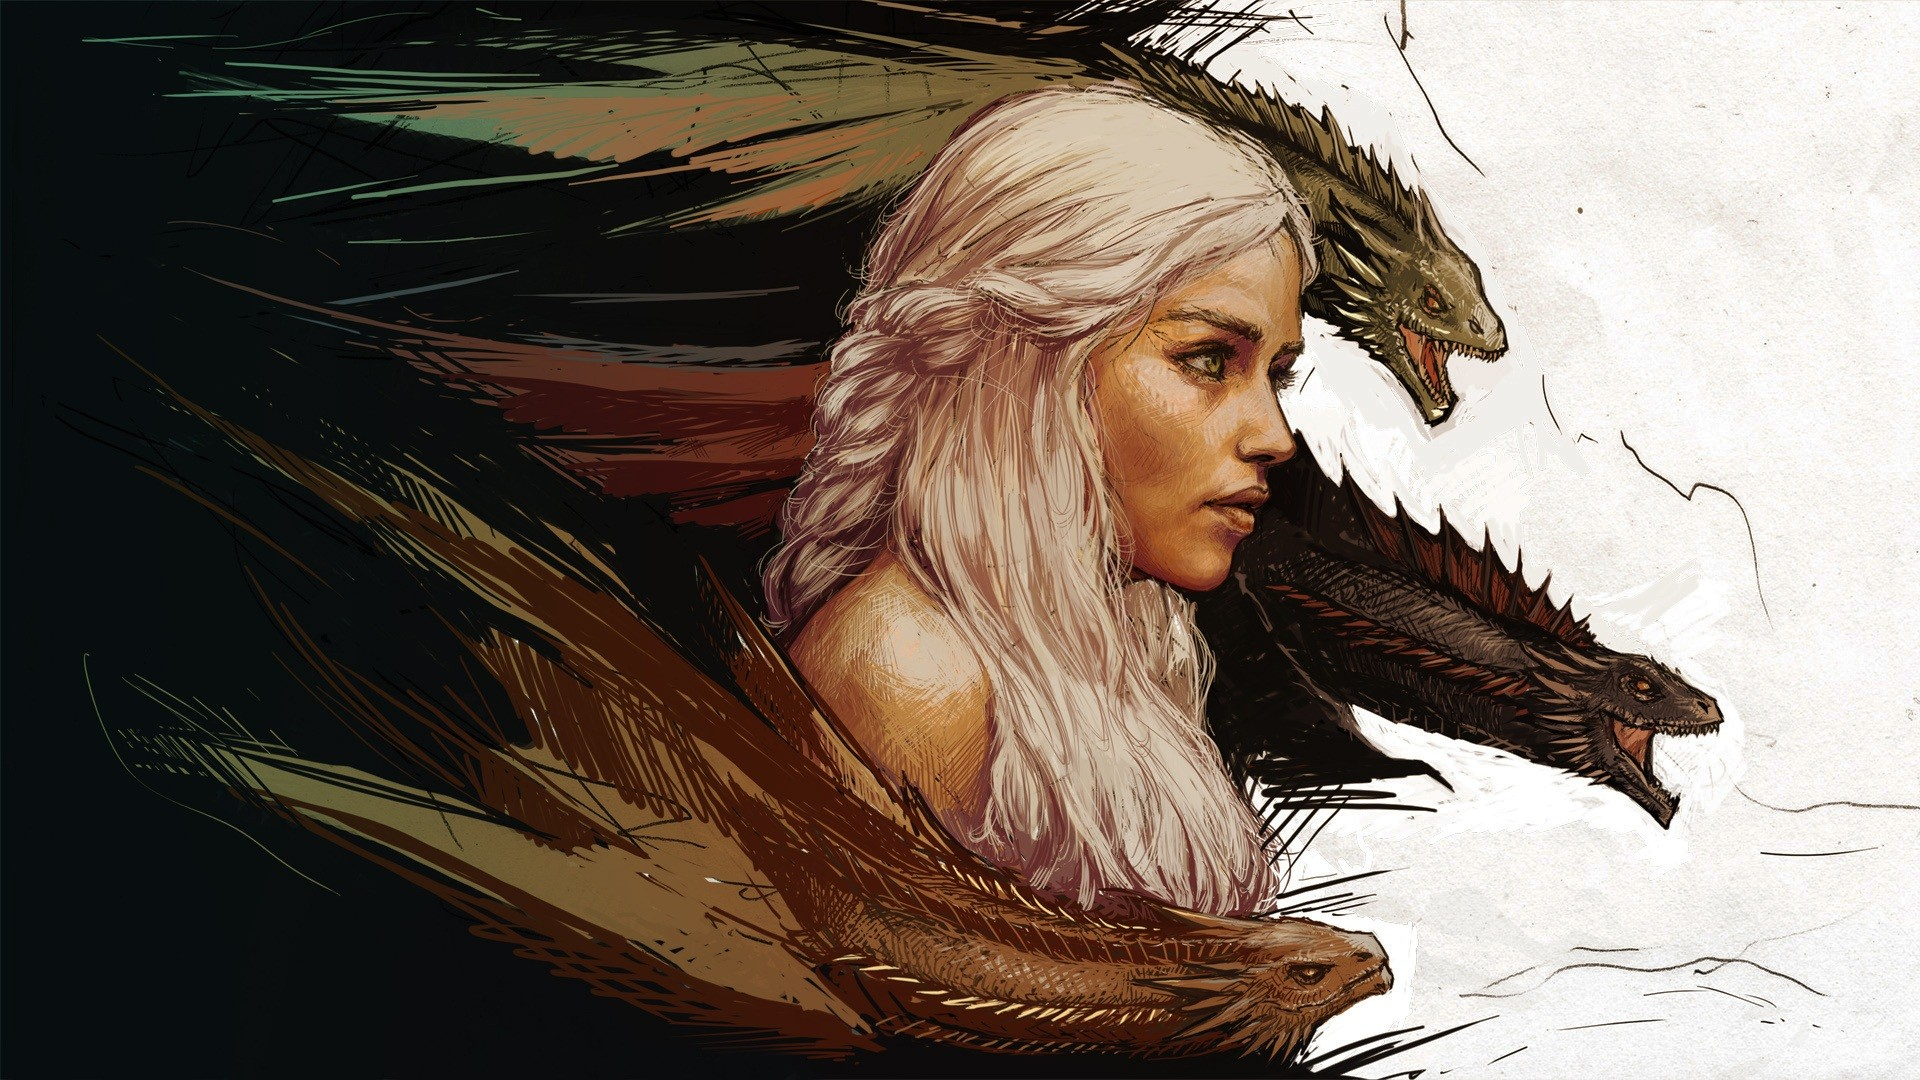 Game Of Thrones Daenerys Wallpaper: Game Of Thrones HD Wallpaper